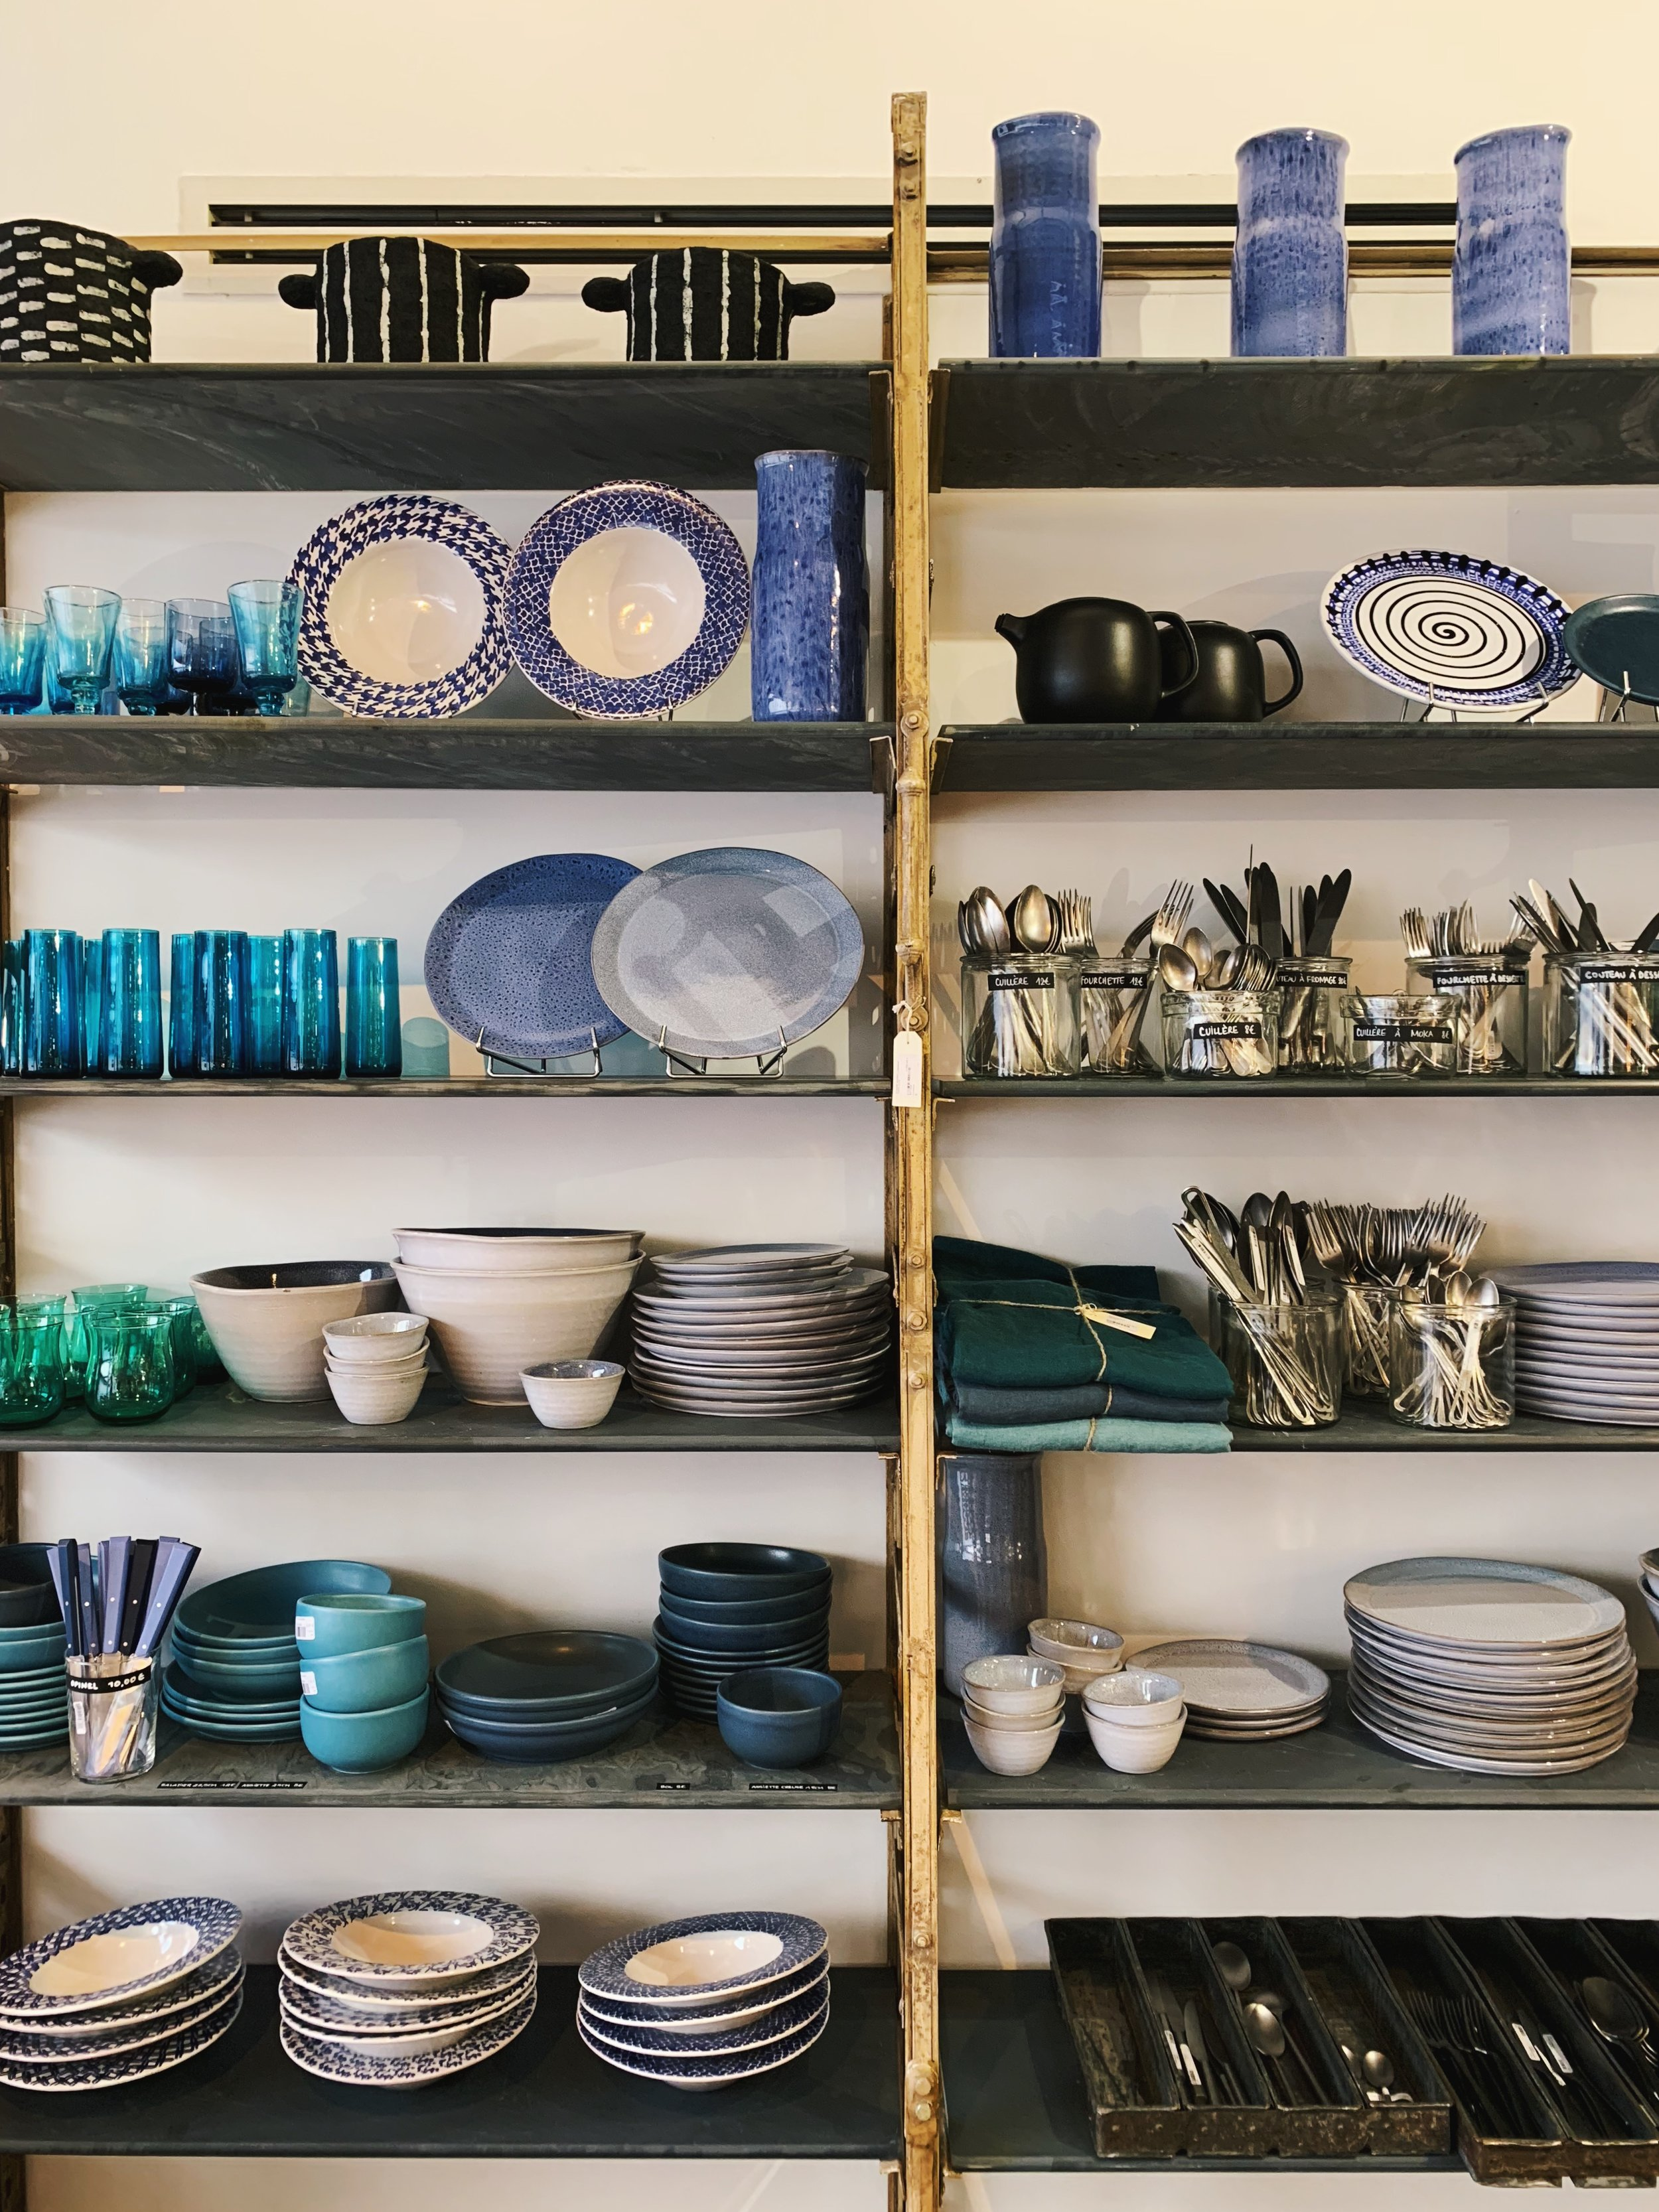 Ceramics and flatware at Merci.